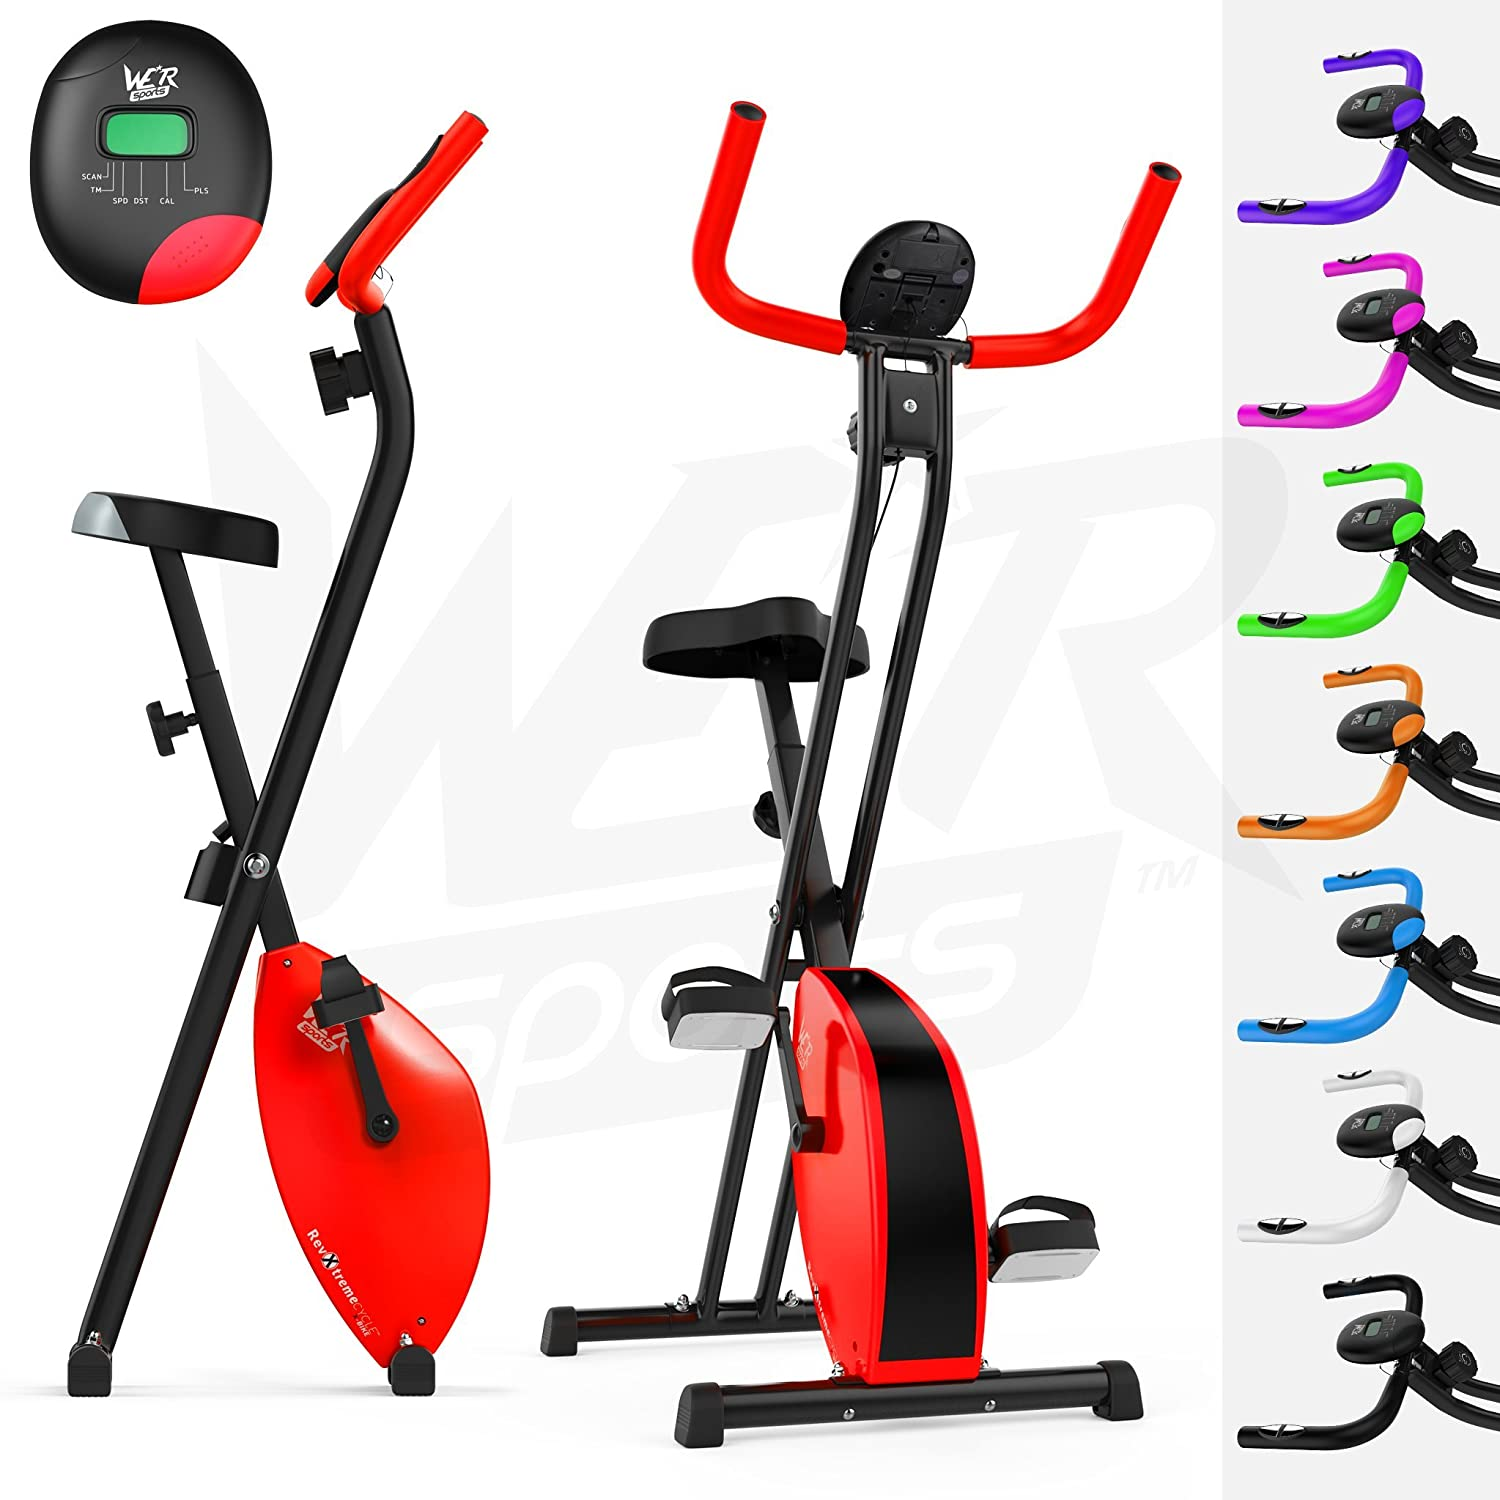 Folding Magnetic Exercise Bike X-Bike Fitness Cardio Workout Weight Loss Machine We R Sports